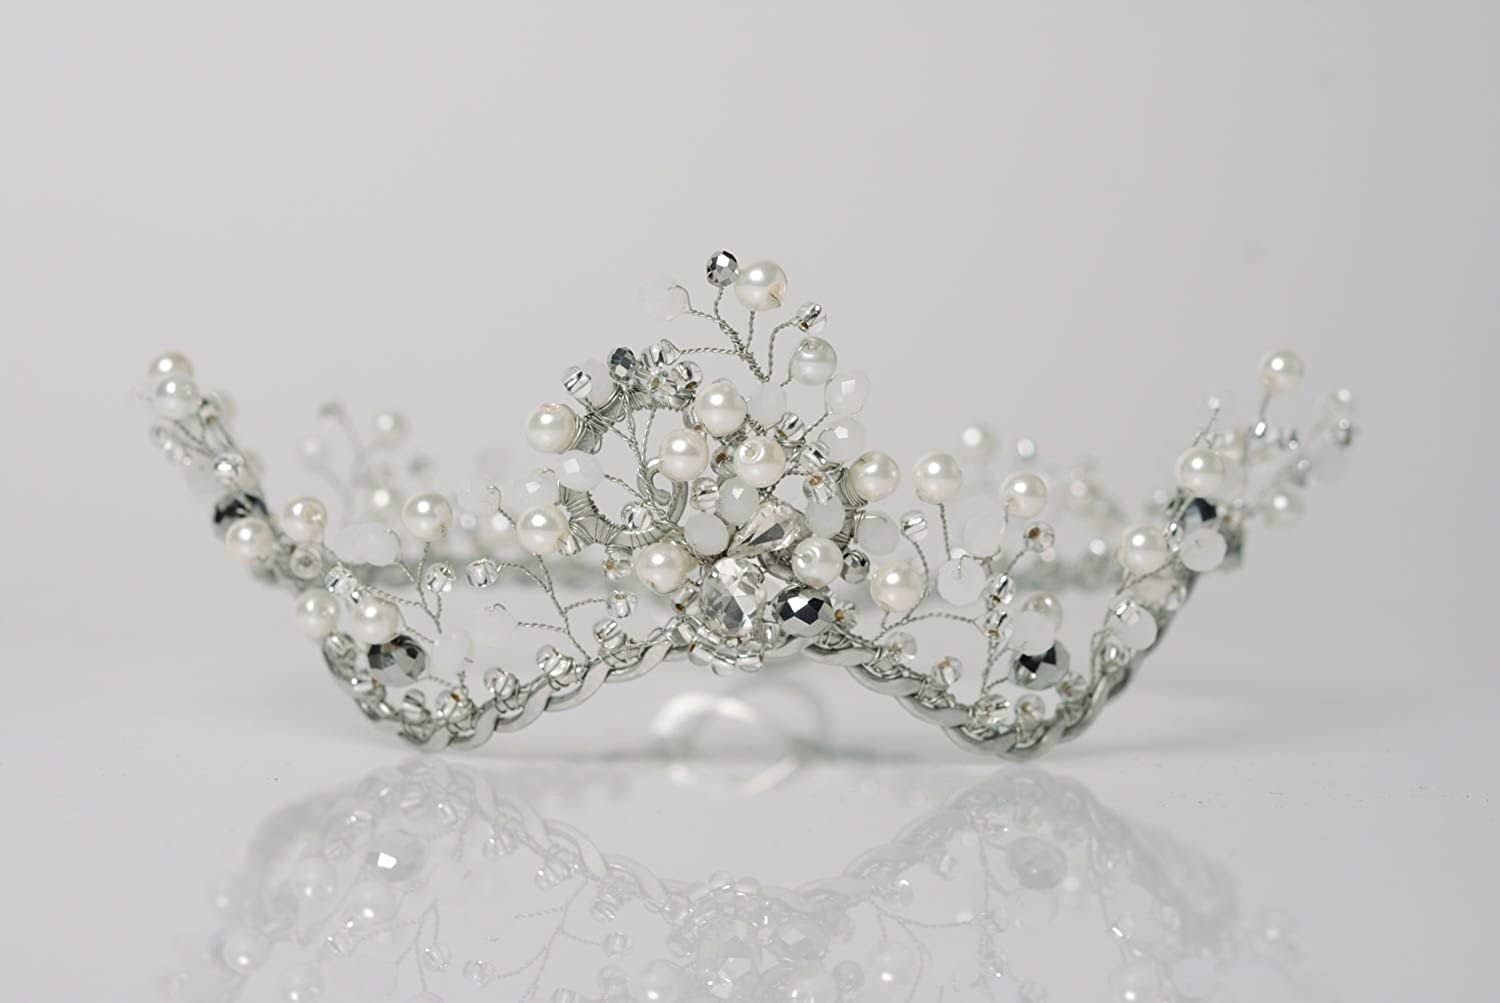 Handmade Designer Wire Tiara With Beads Women's Hair Accessory Snow Queen